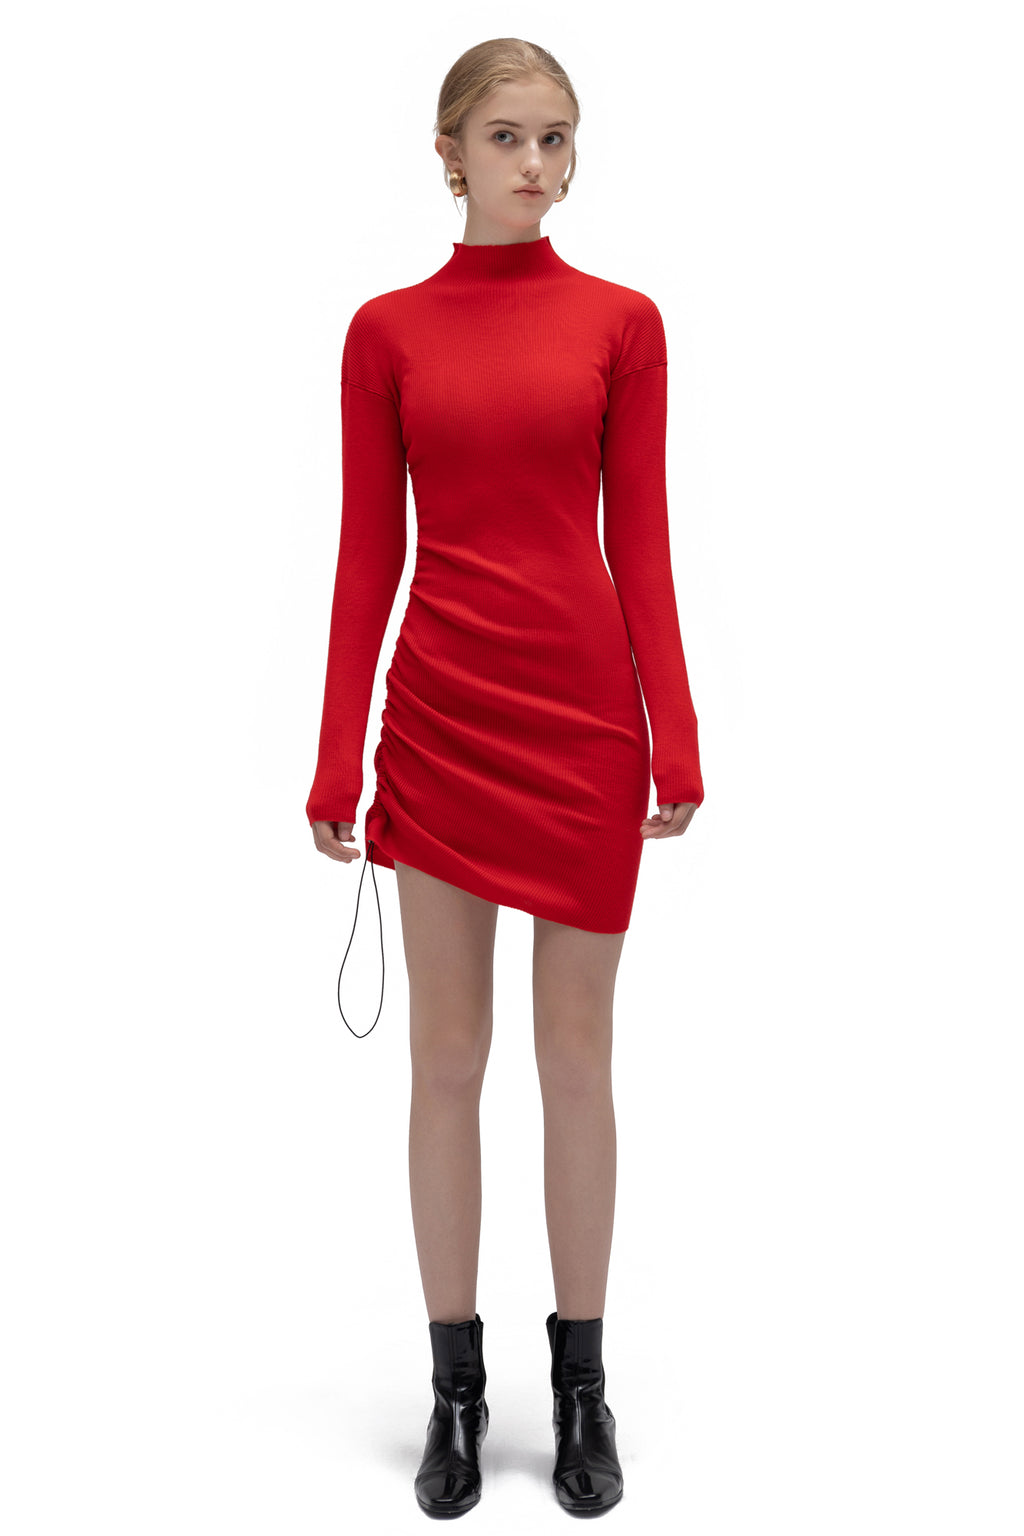 YUEL XIANG high-neck drawstring knit dress